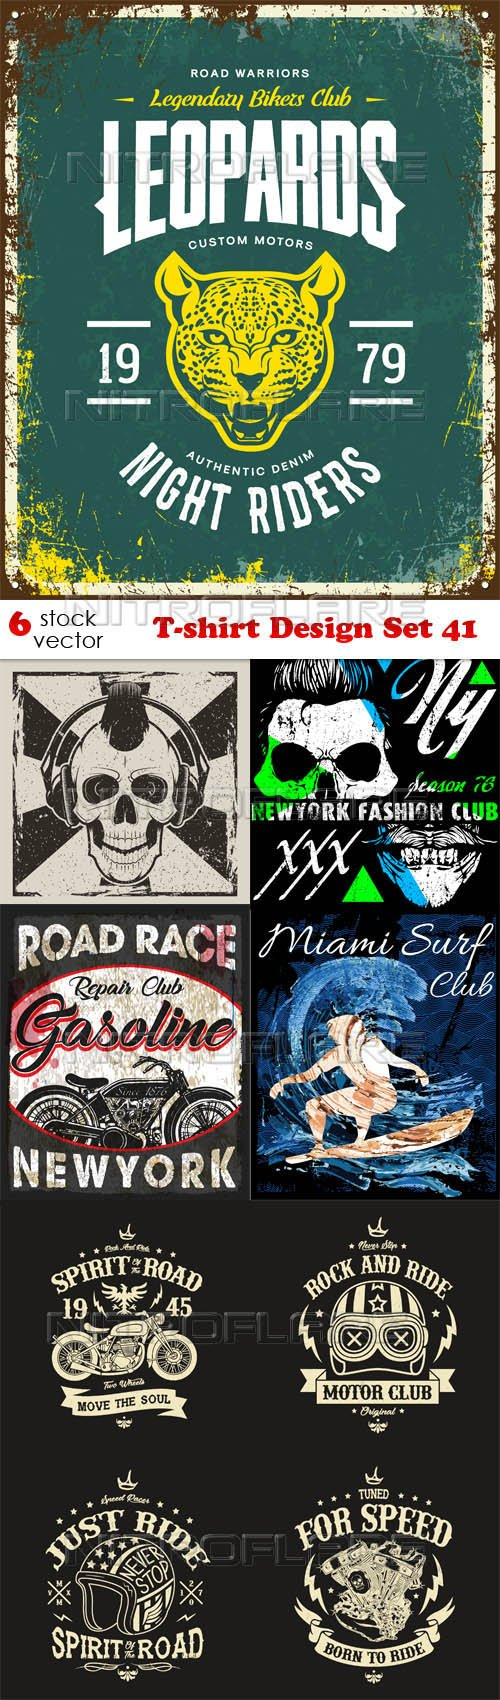 Vectors - T-shirt Design Set 41